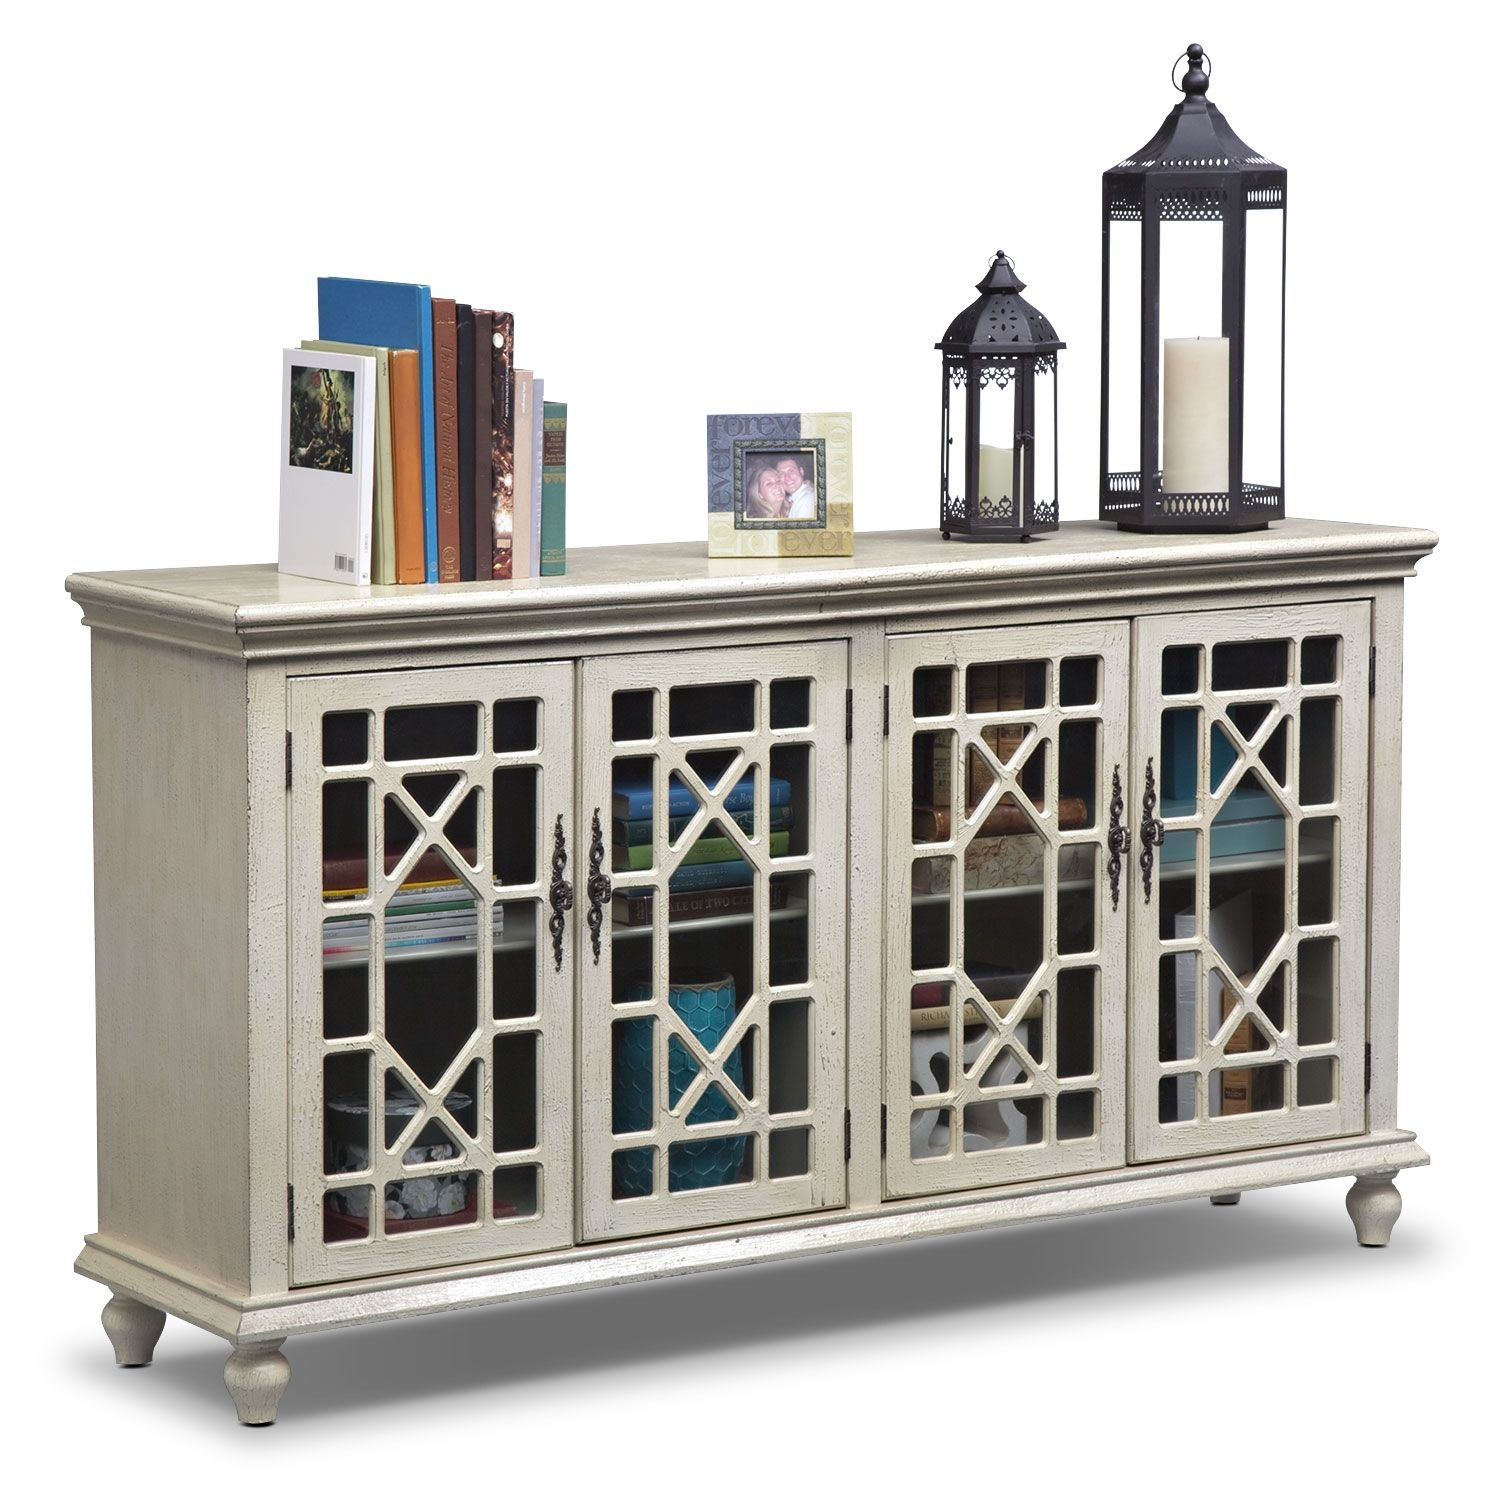 Make A Statement With The Distressed Ivory Grenoble Media Credenza.